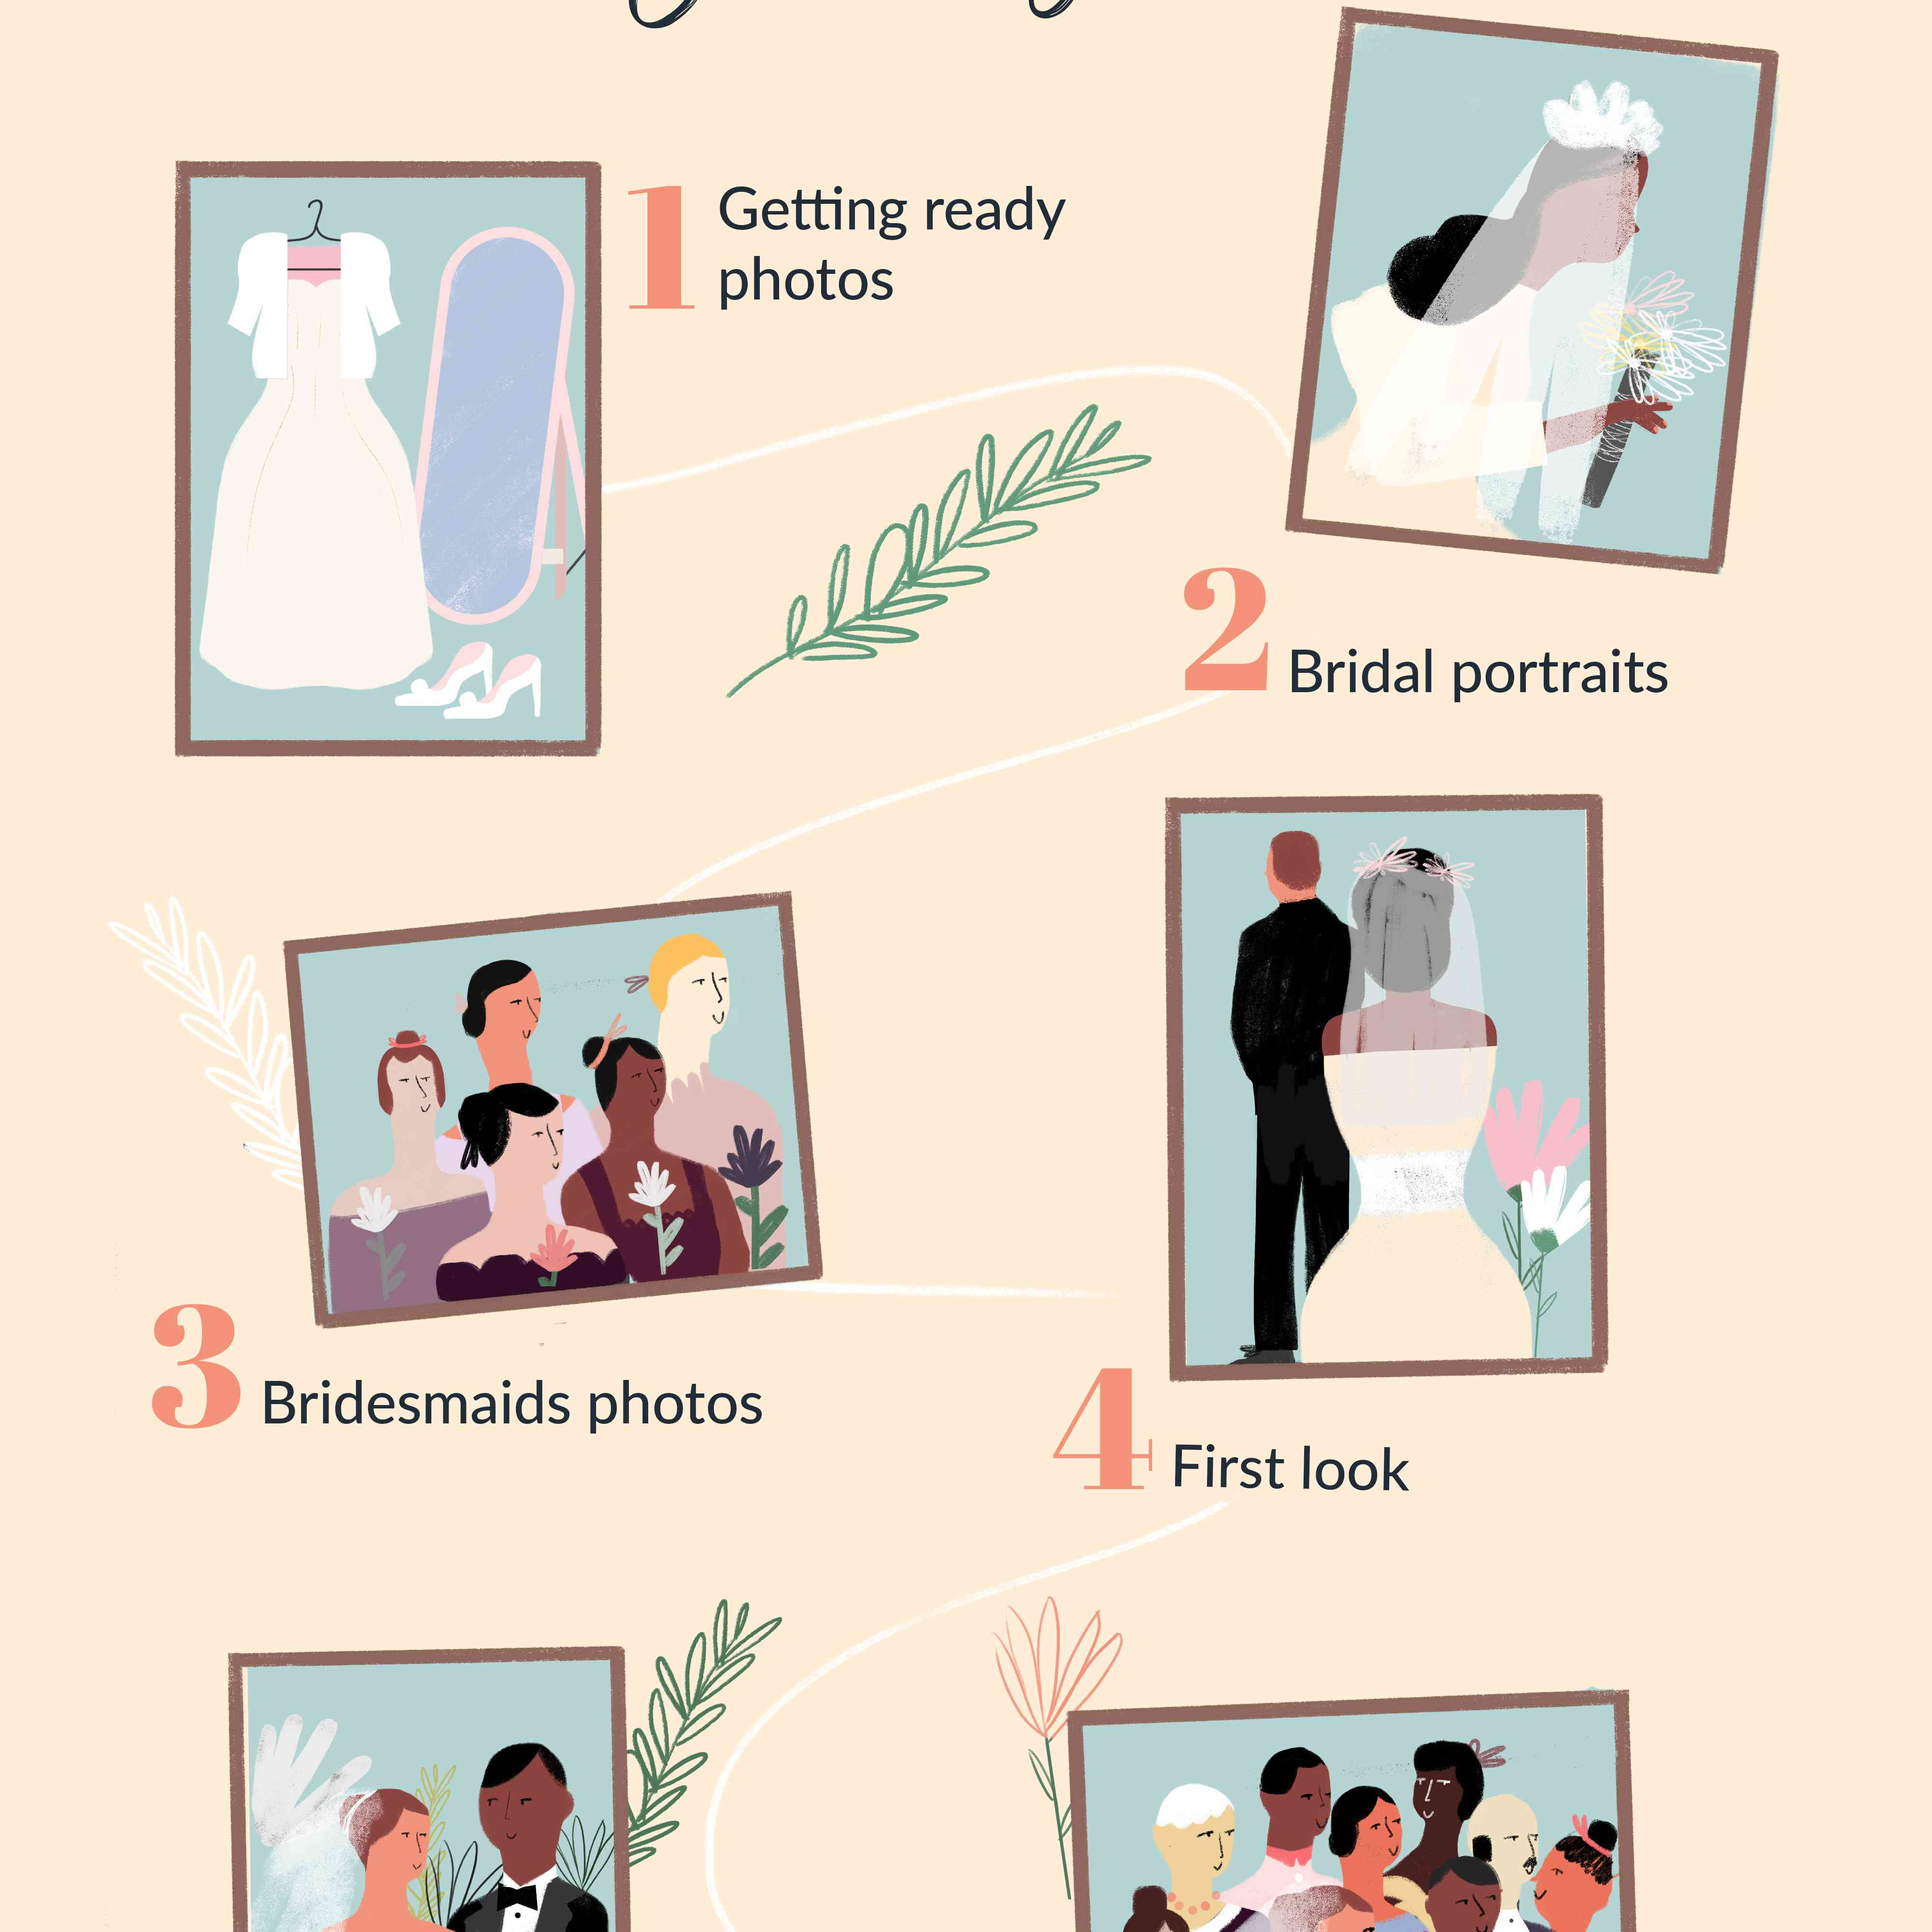 How To Plan Your Wedding Day And Reception Timeline